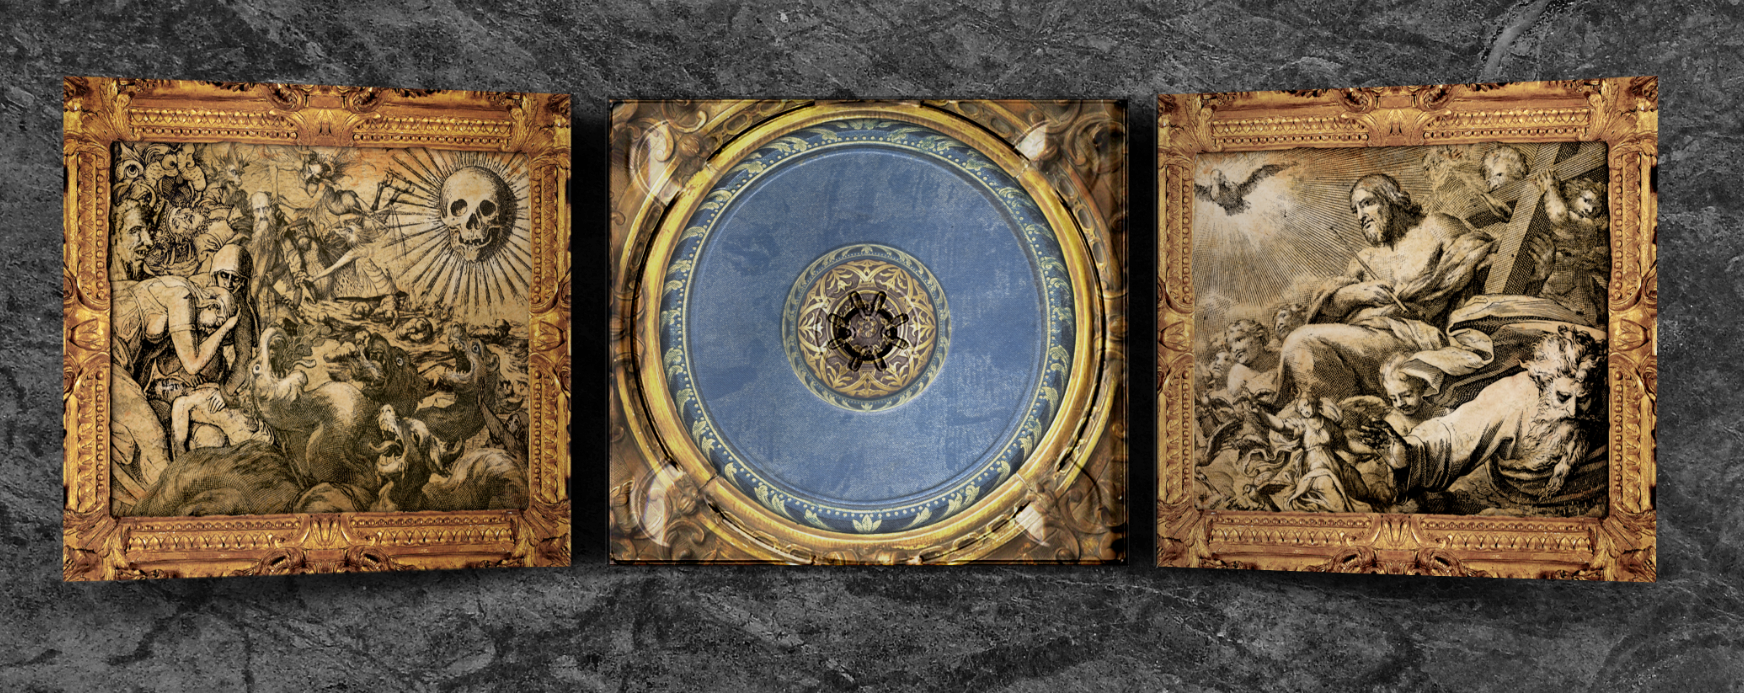 """Art Direction: CD digipak package design for recording artist Bishop Lamont's 2016 album release, """"The Reformation: G.D.N.I.A.F.T"""" (inside view w/ cd tray)"""